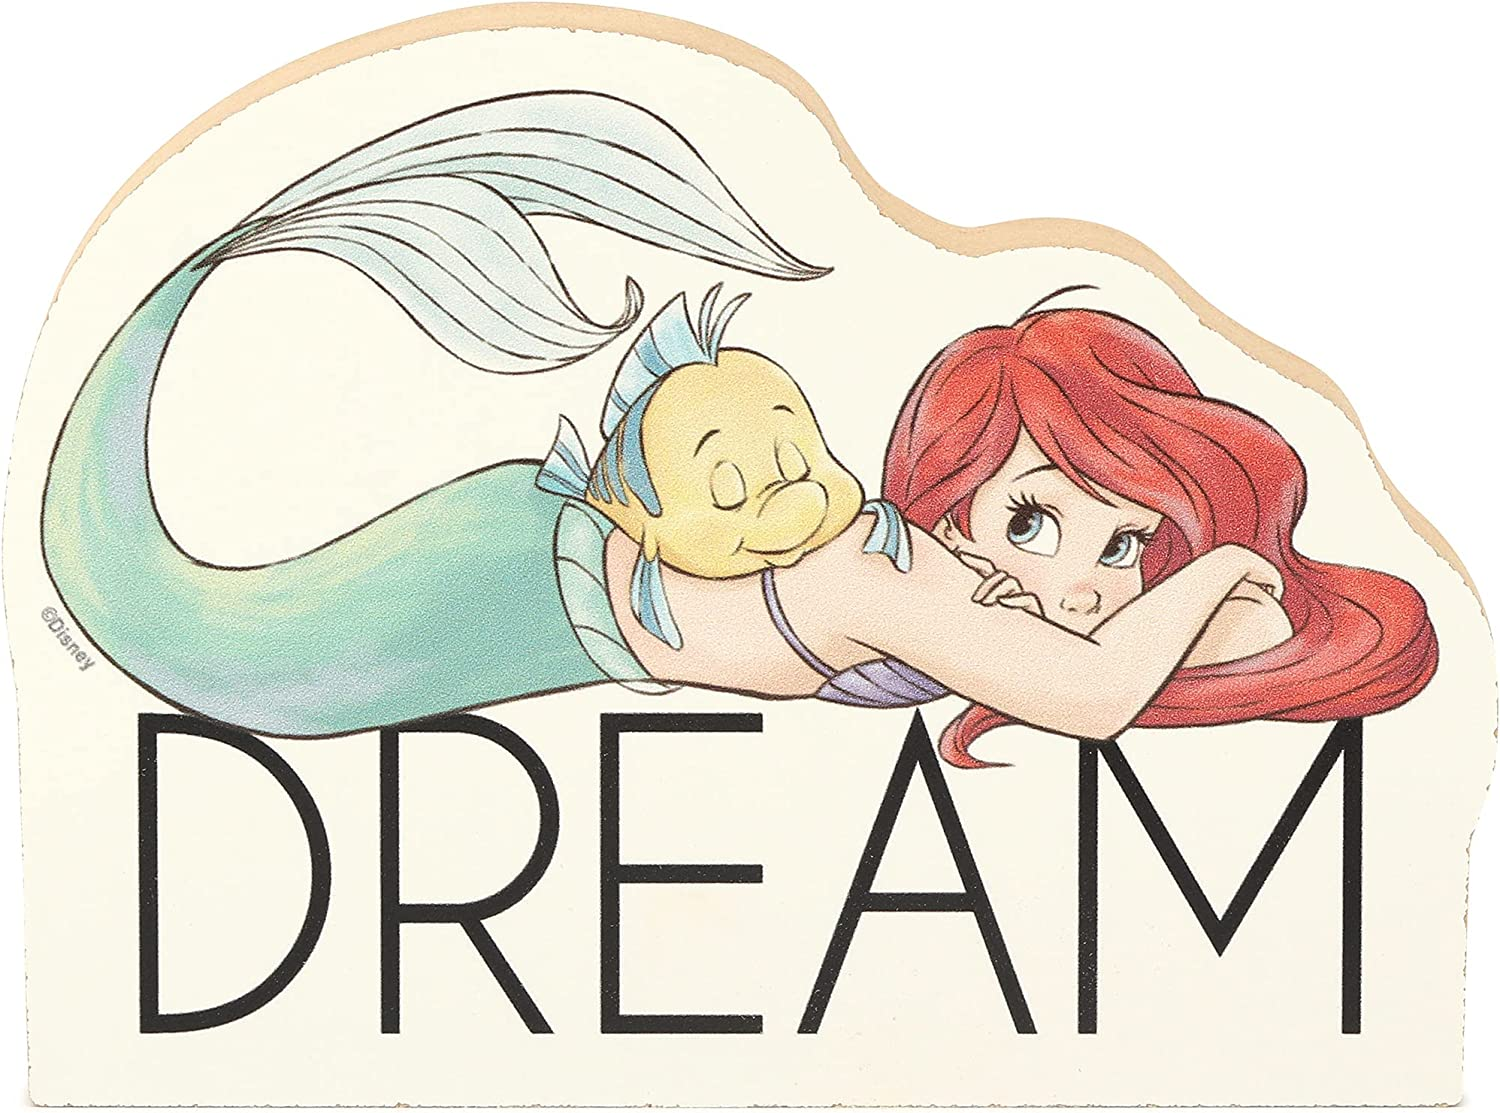 Open Road Brands Disney Princess The Little Mermaid Ariel and Flounder Dream Shelf Sitter Décor - Chunky Wood Block Cutout for Kids' Bedroom, Play Room or Nursery